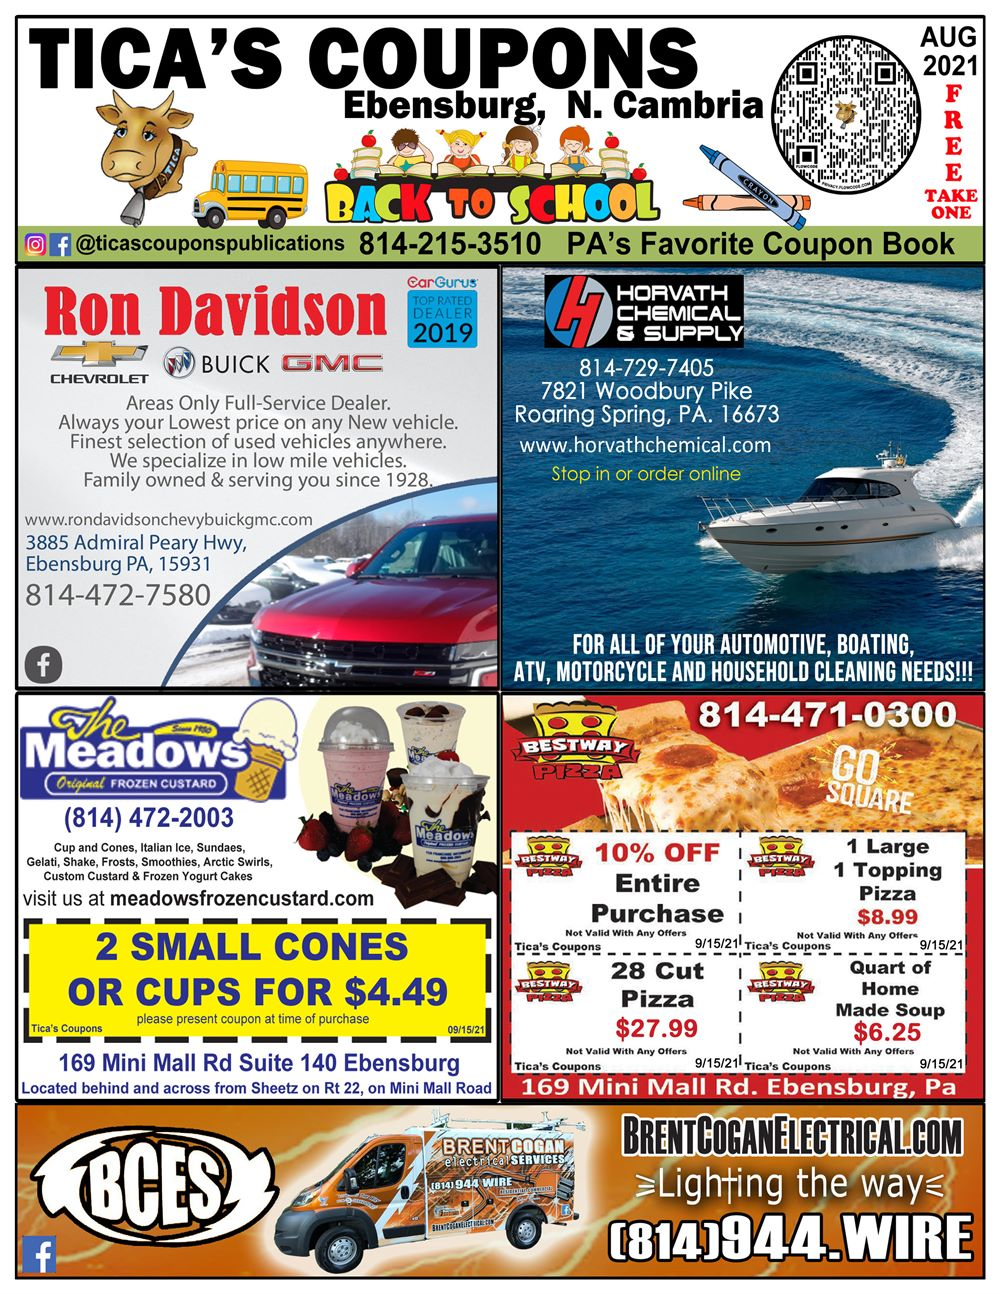 Ebensburg front cover Aug 2021